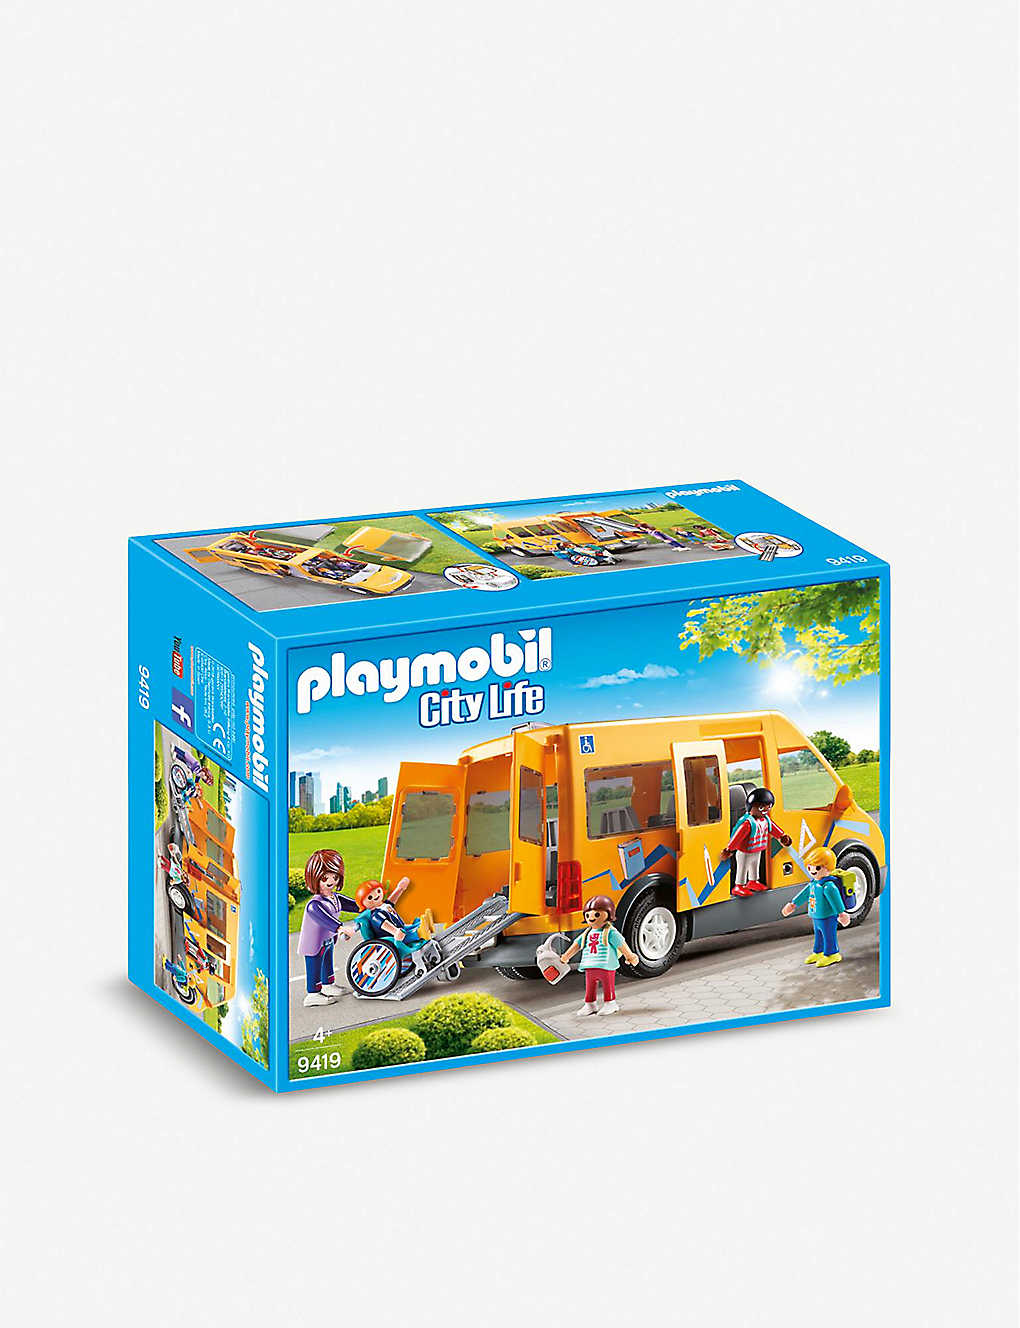 PLAYMOBIL: City Life school van play set